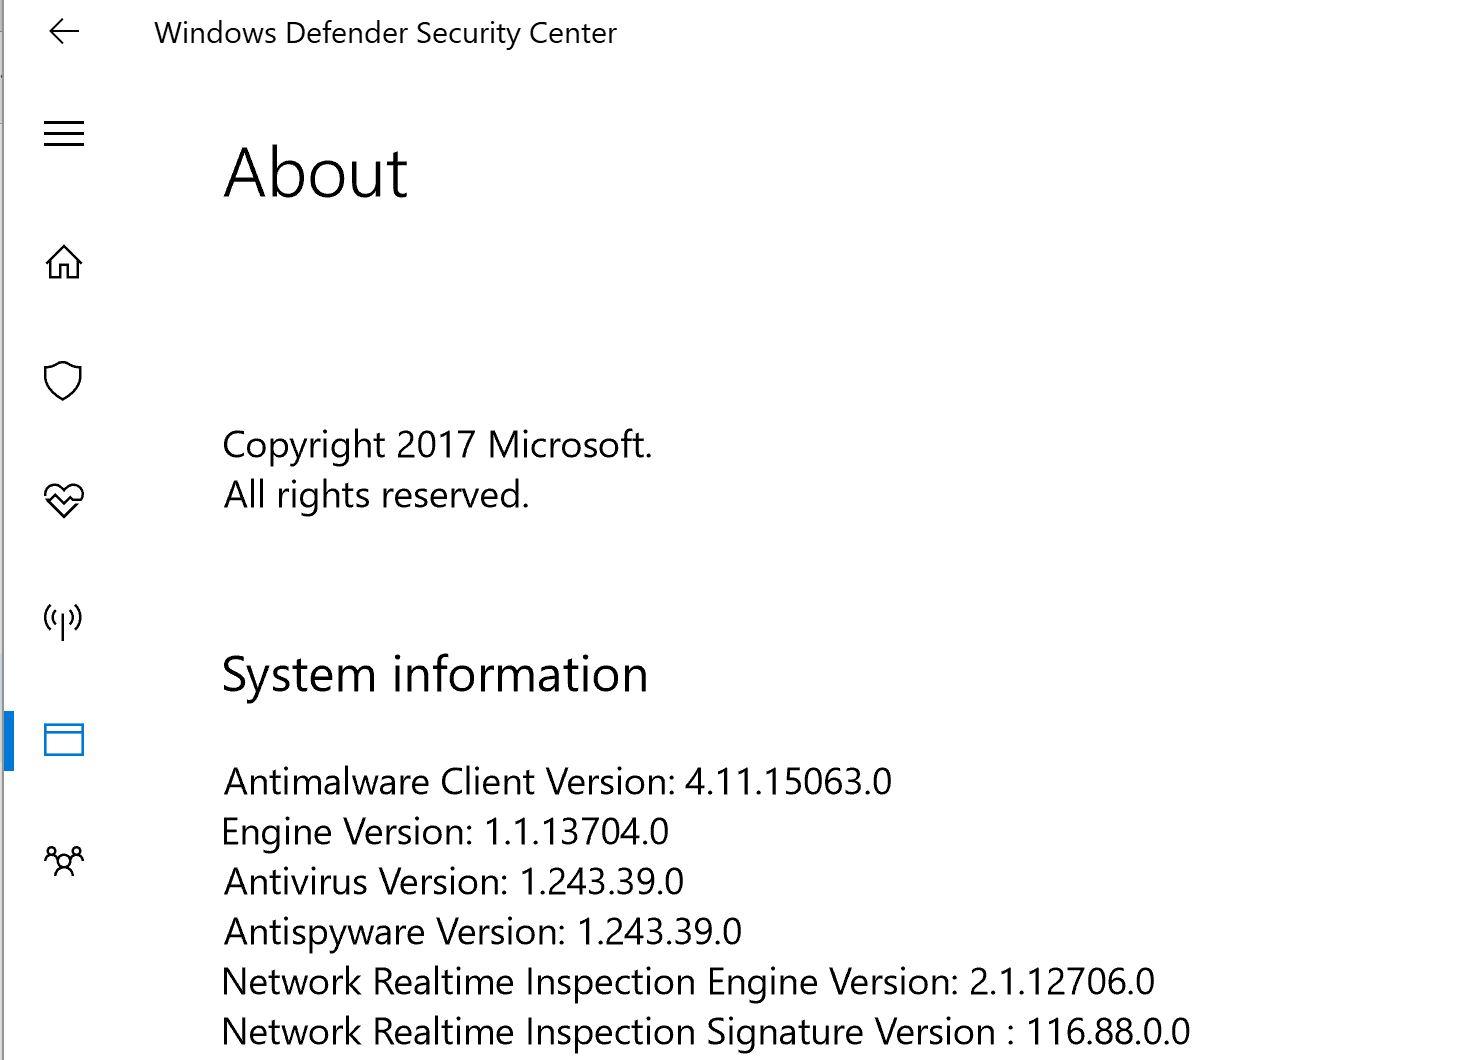 Major Windows Security Issue: Microsoft Malware Protection